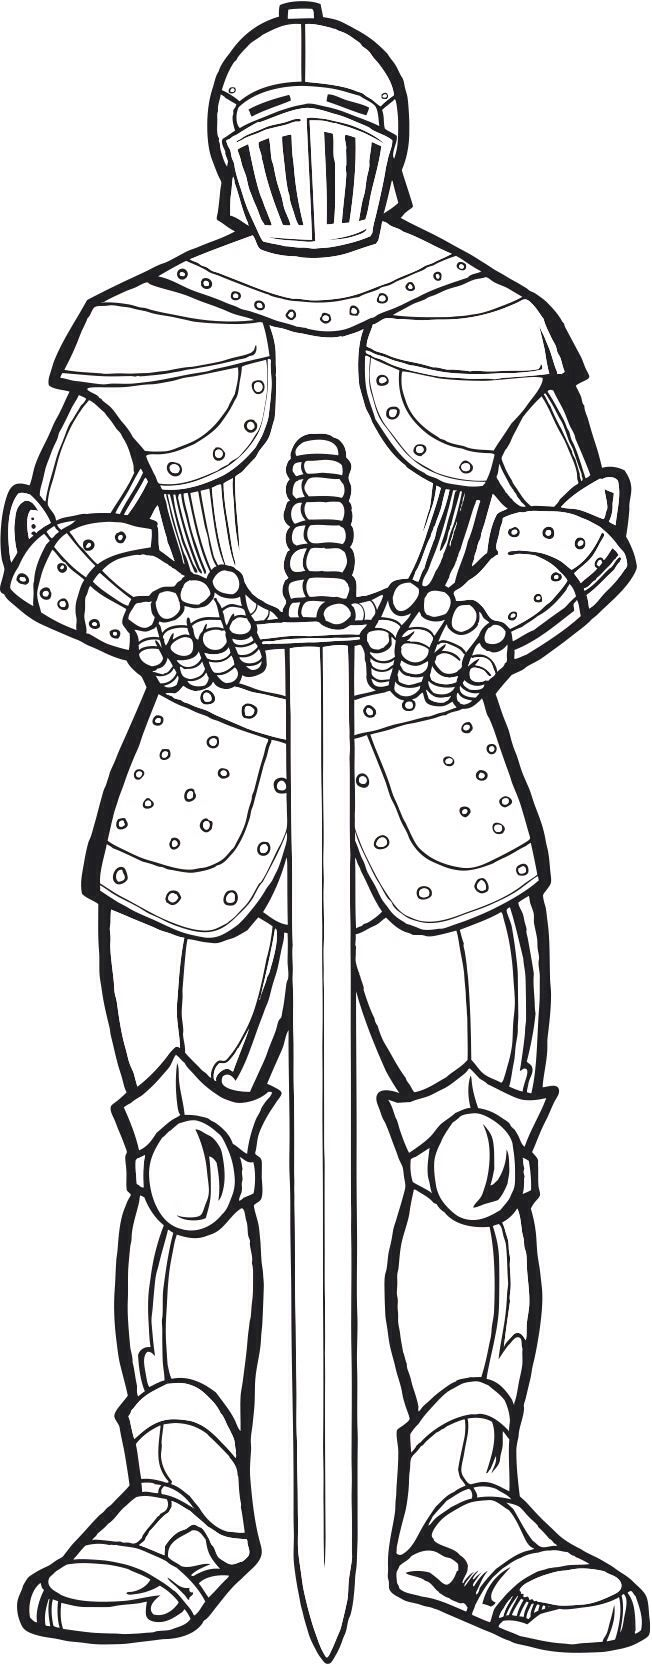 Knight | Knights of Liberty | Pinterest | Knight, Coloring books and ...